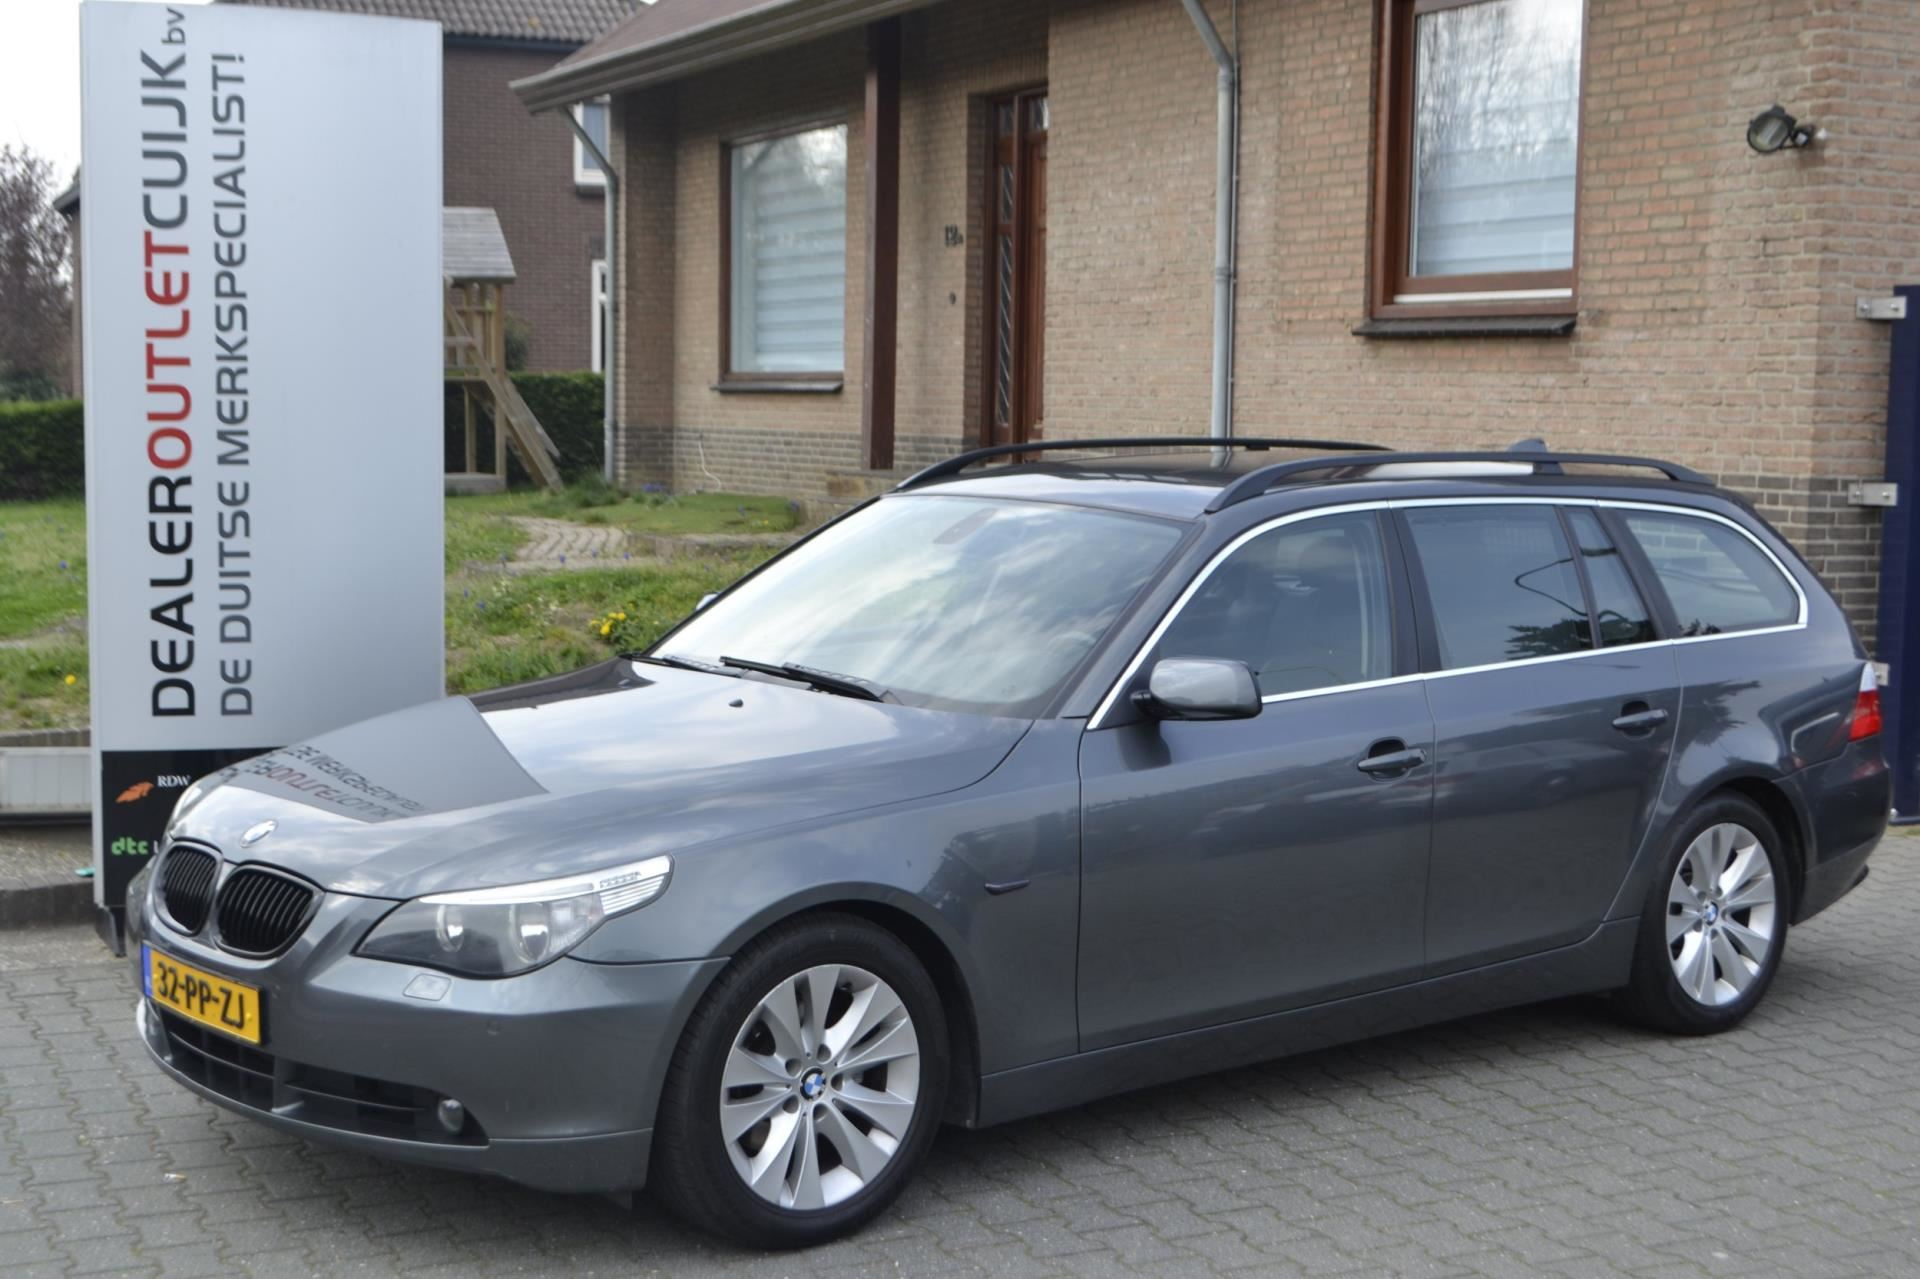 BMW 5-serie Touring occasion - Dealer Outlet Cuijk b.v.